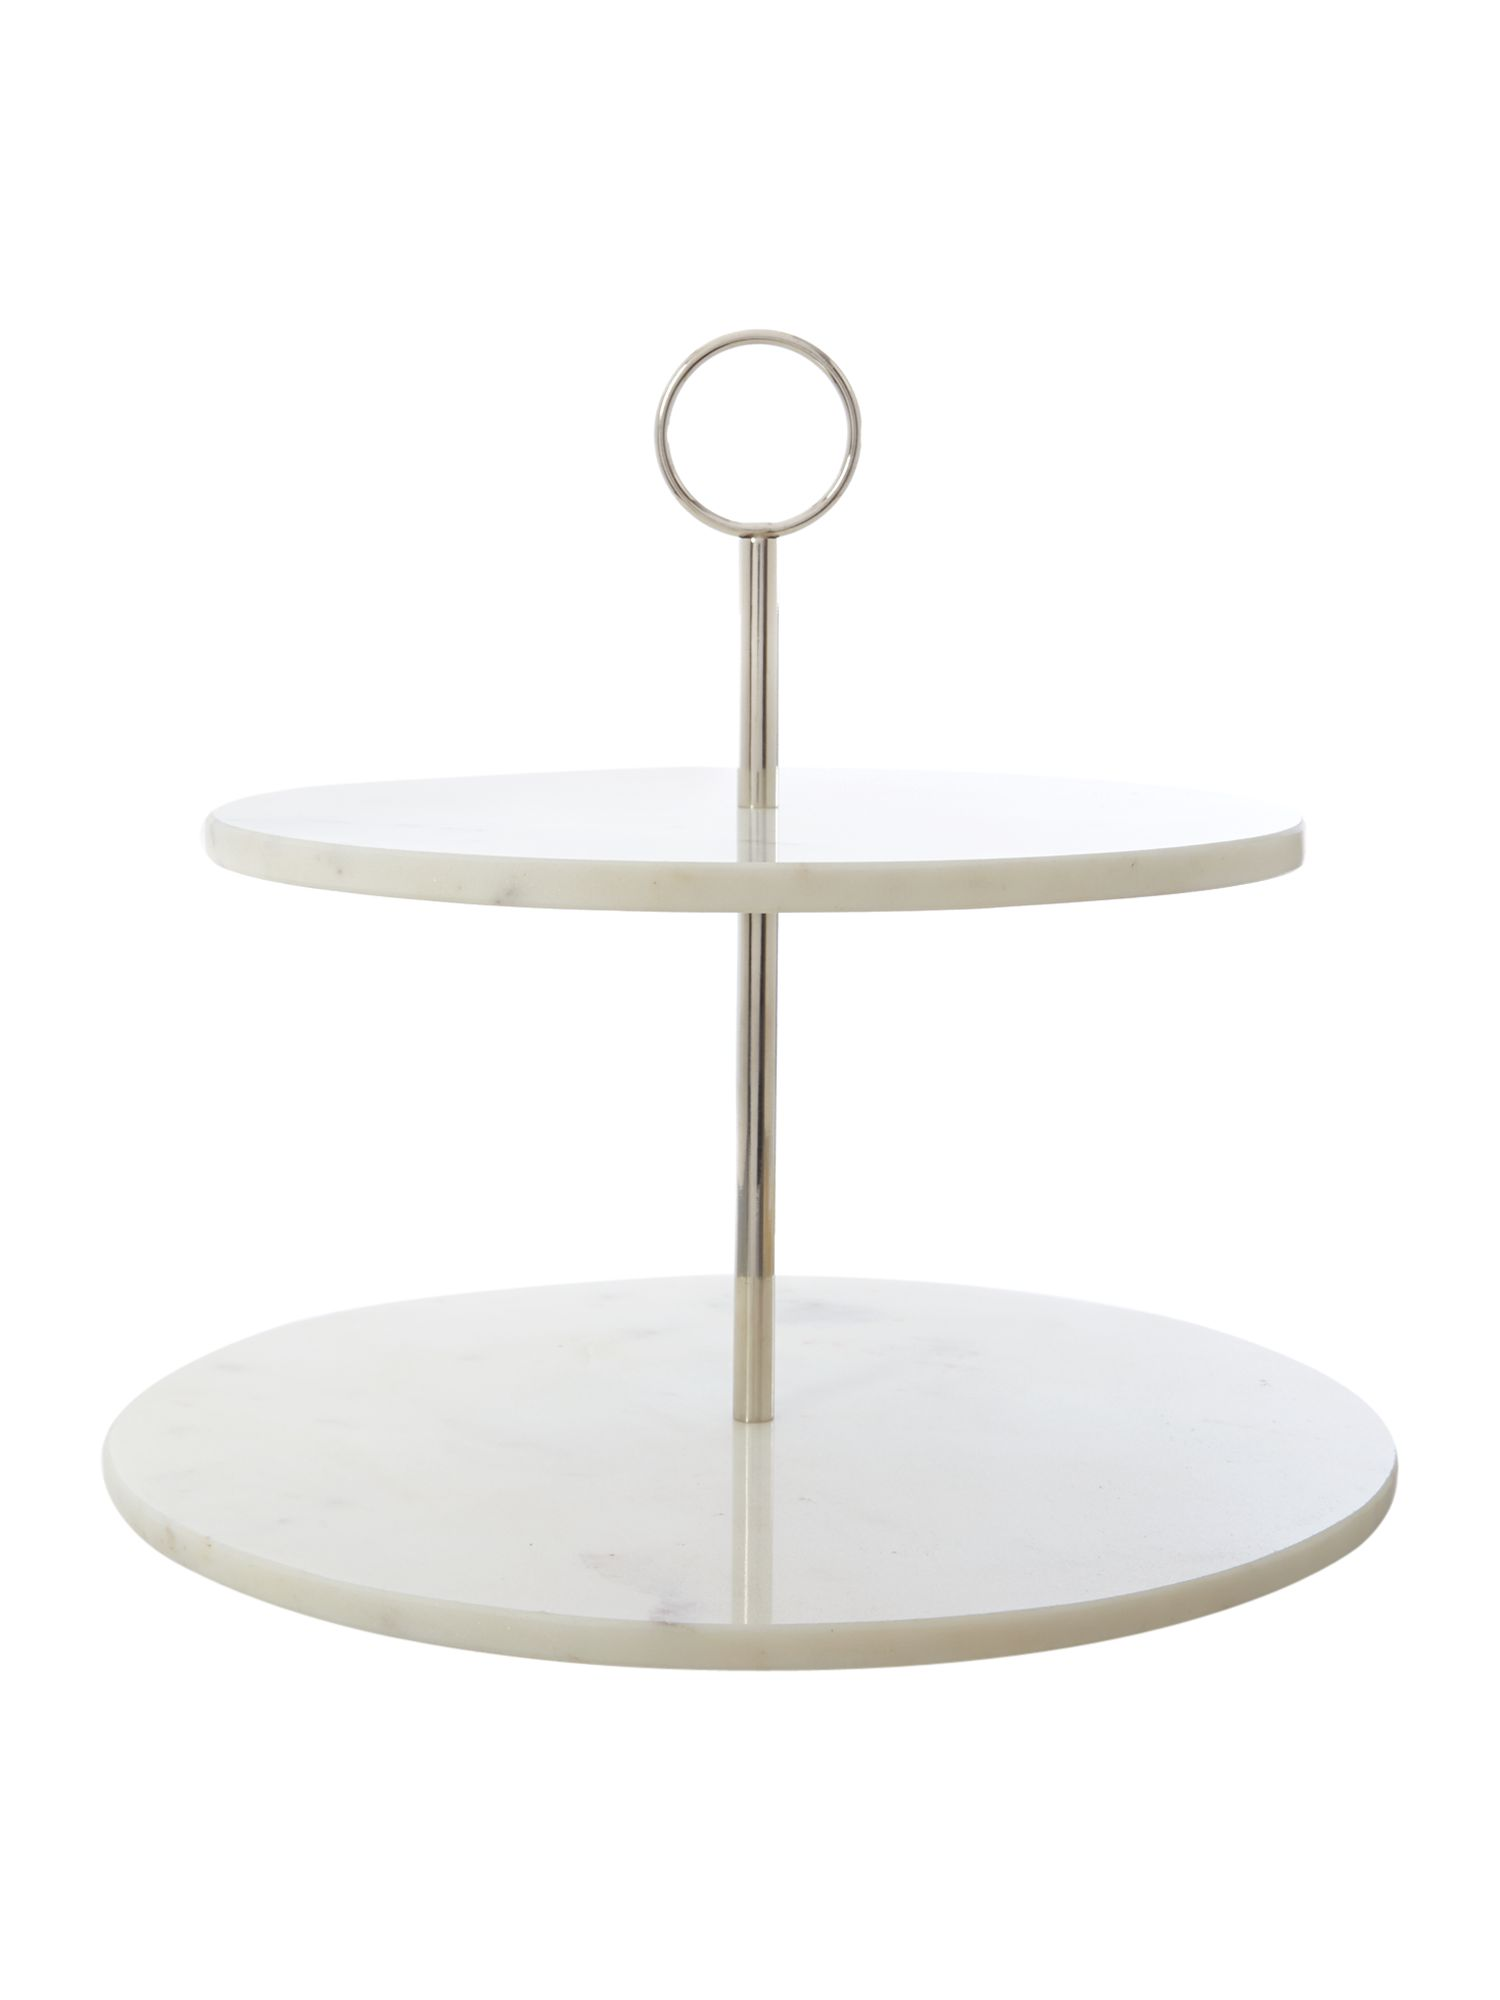 White marble cake stand